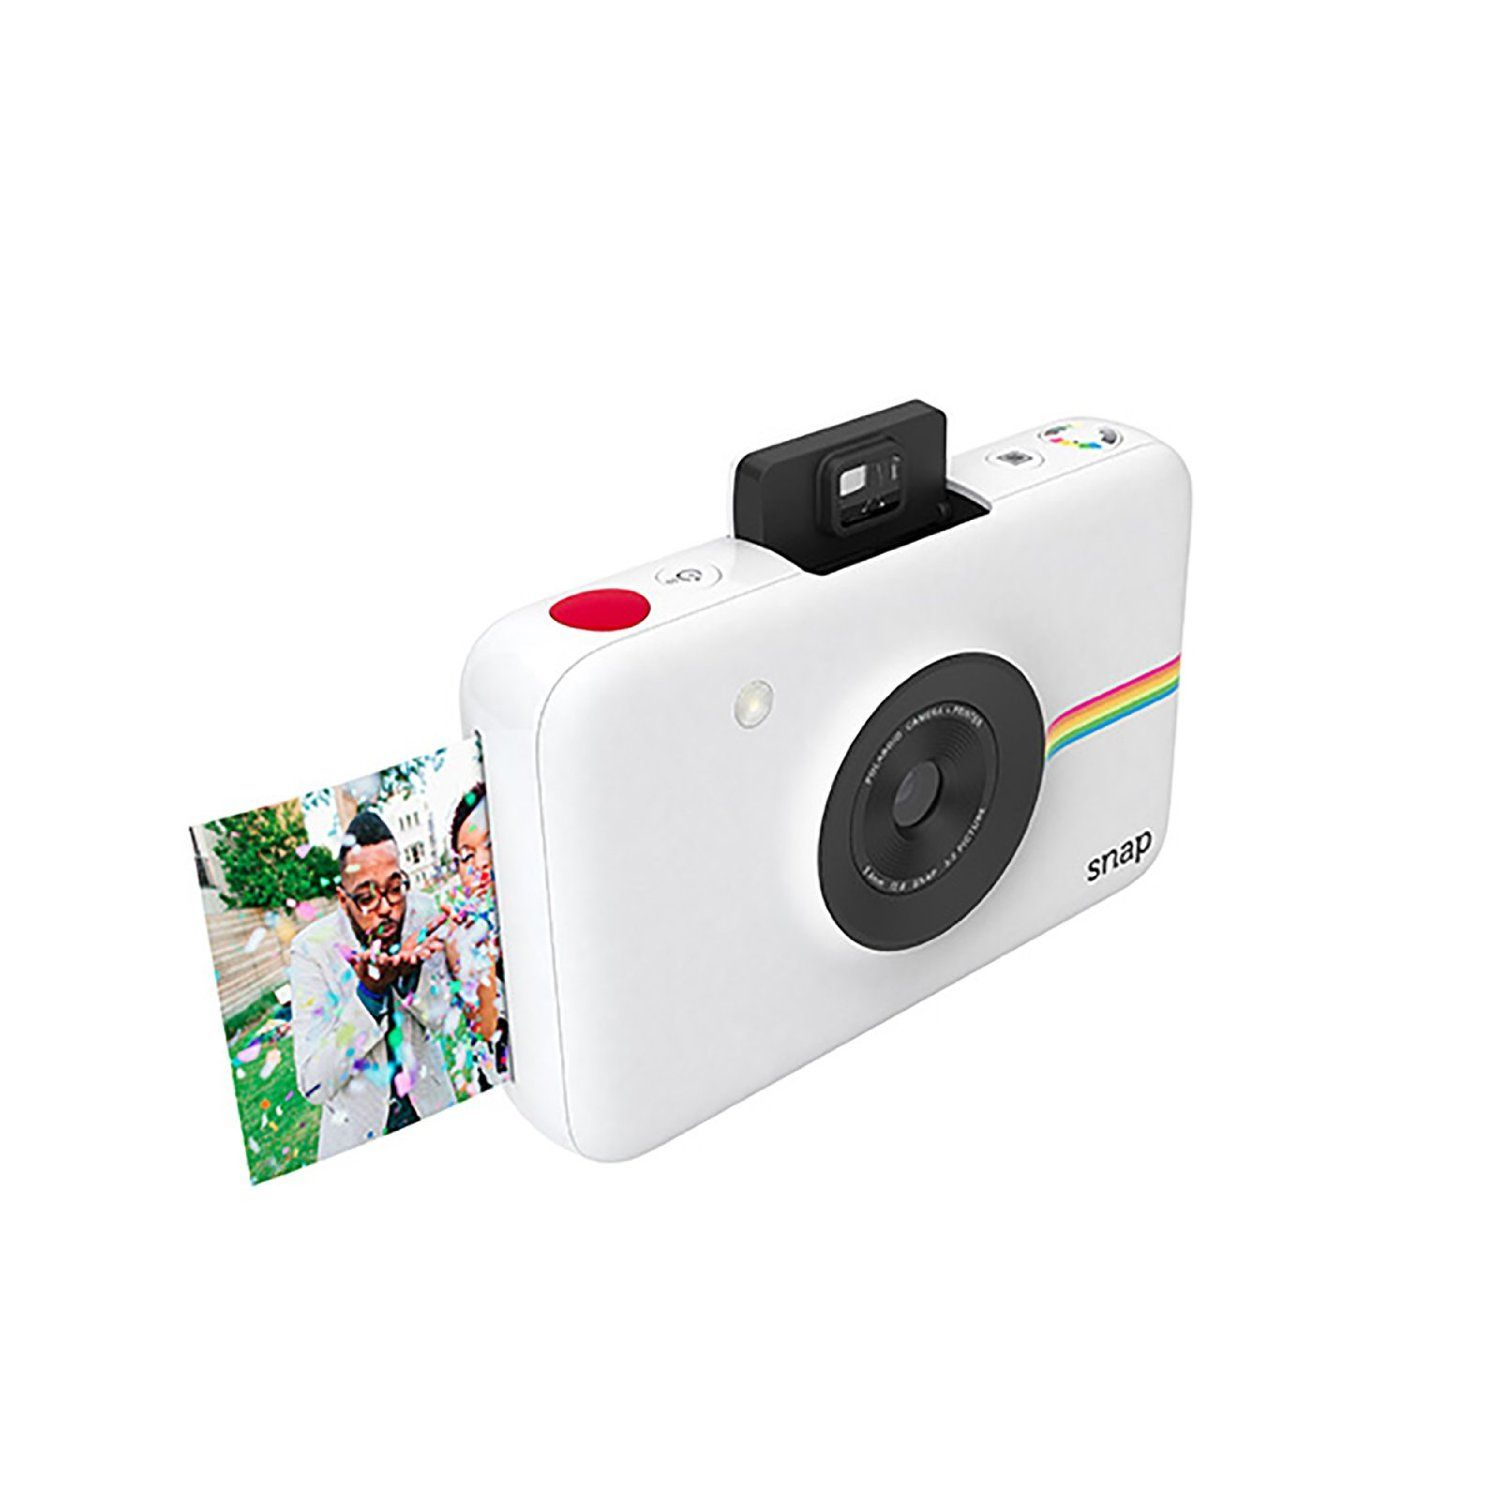 Polaroid Snap Instant Digital Camera (White) wih ZINK Zero Ink ...